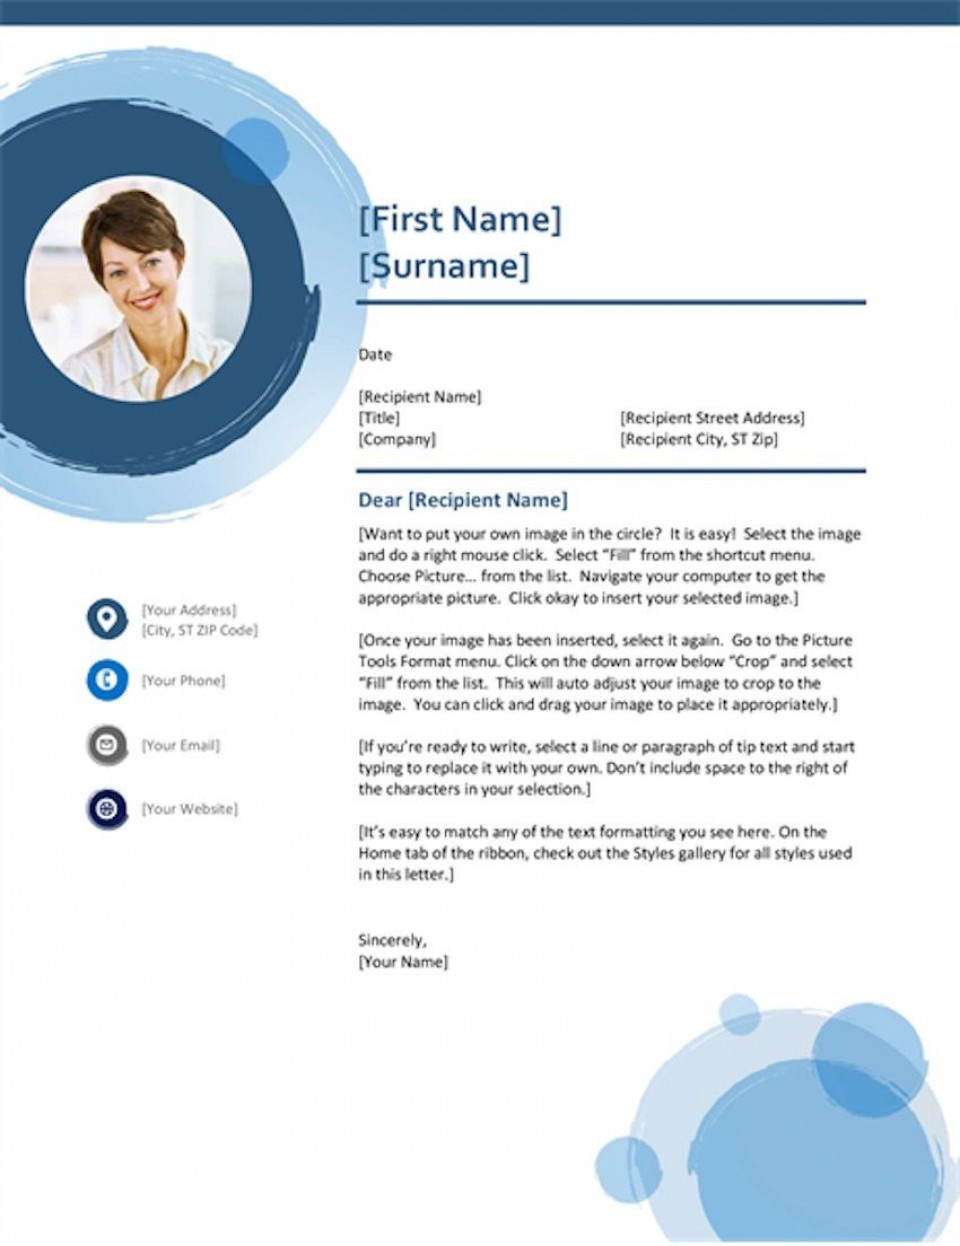 003 Imposing Resume Cover Letter Template Free Image  Simple Online Microsoft960